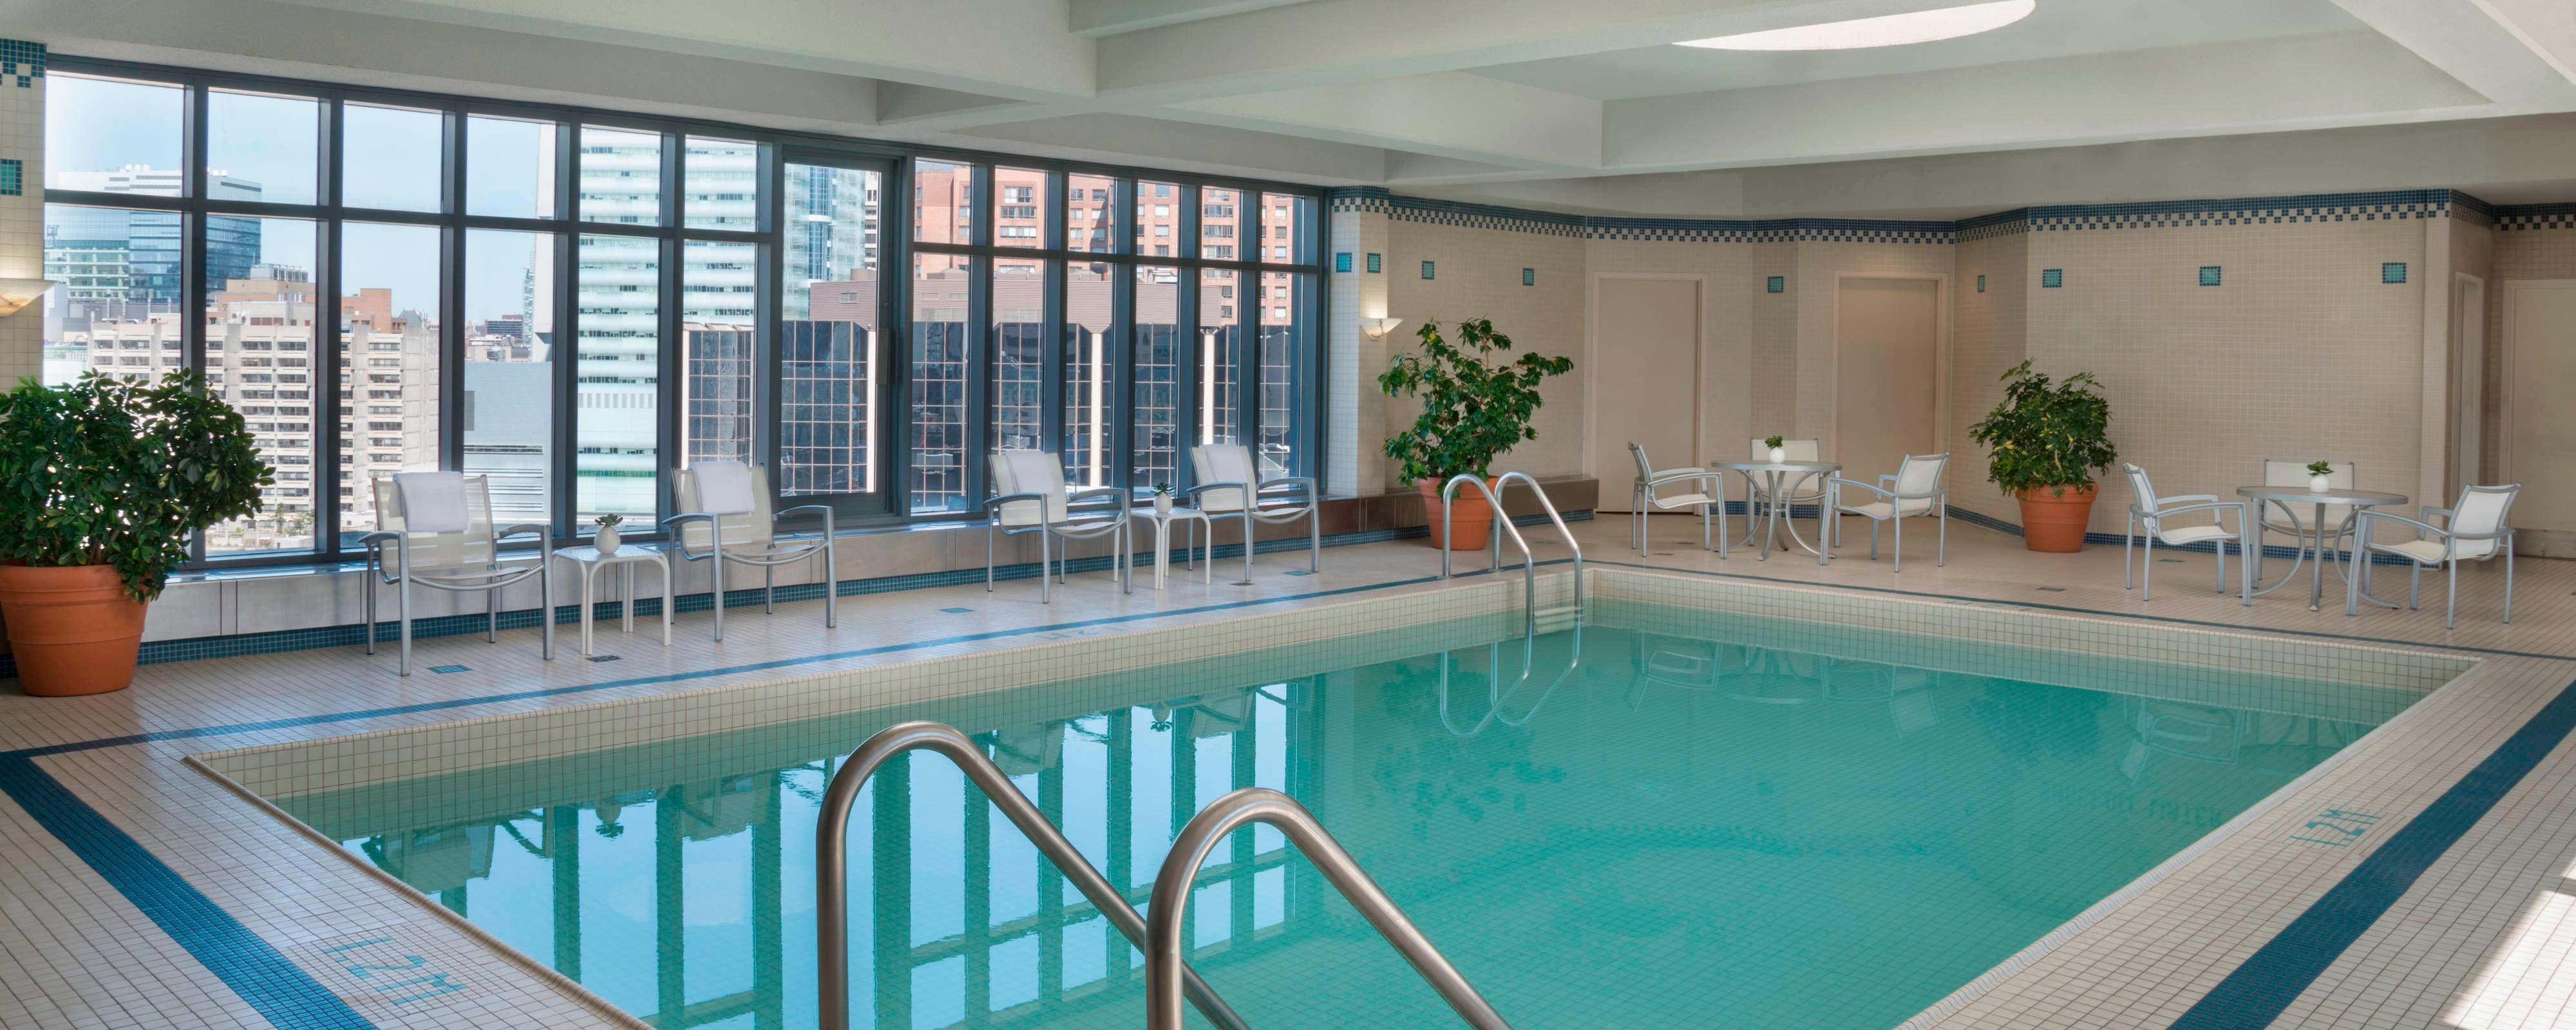 Downtown Toronto Hotel With Pool Toronto Marriott Downtown Eaton Centre Hotel